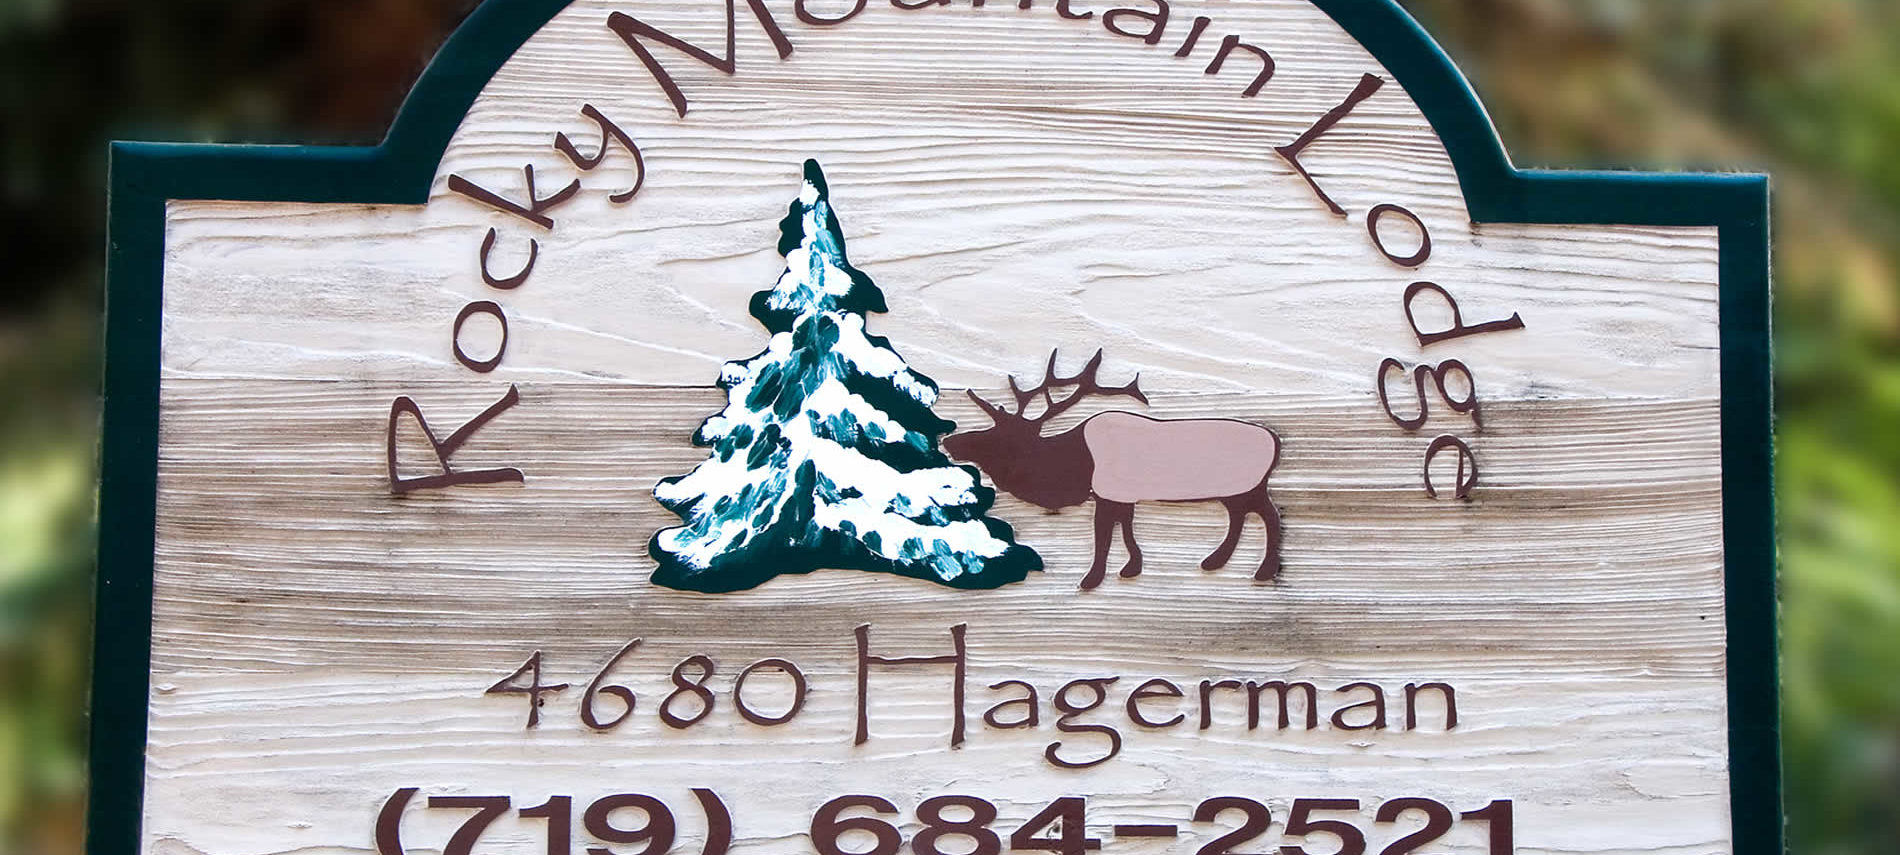 Wood sign trimmed in green that says Rocky Mountain Lodge, 4680 Hagerman, (719) 684-2521 in brown lettering